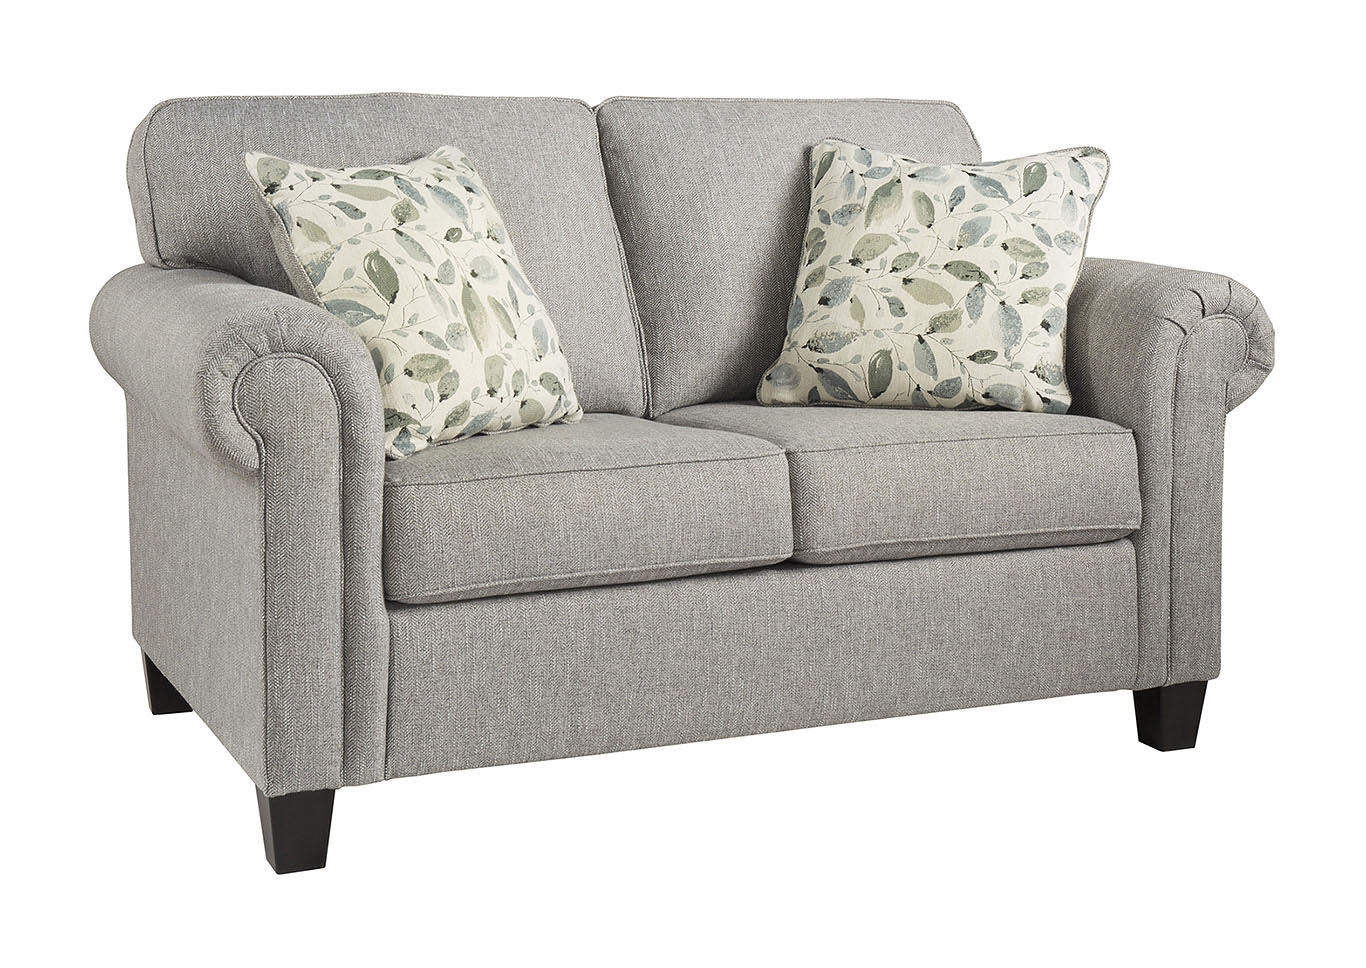 Alandari Gray Loveseat,Signature Design By Ashley